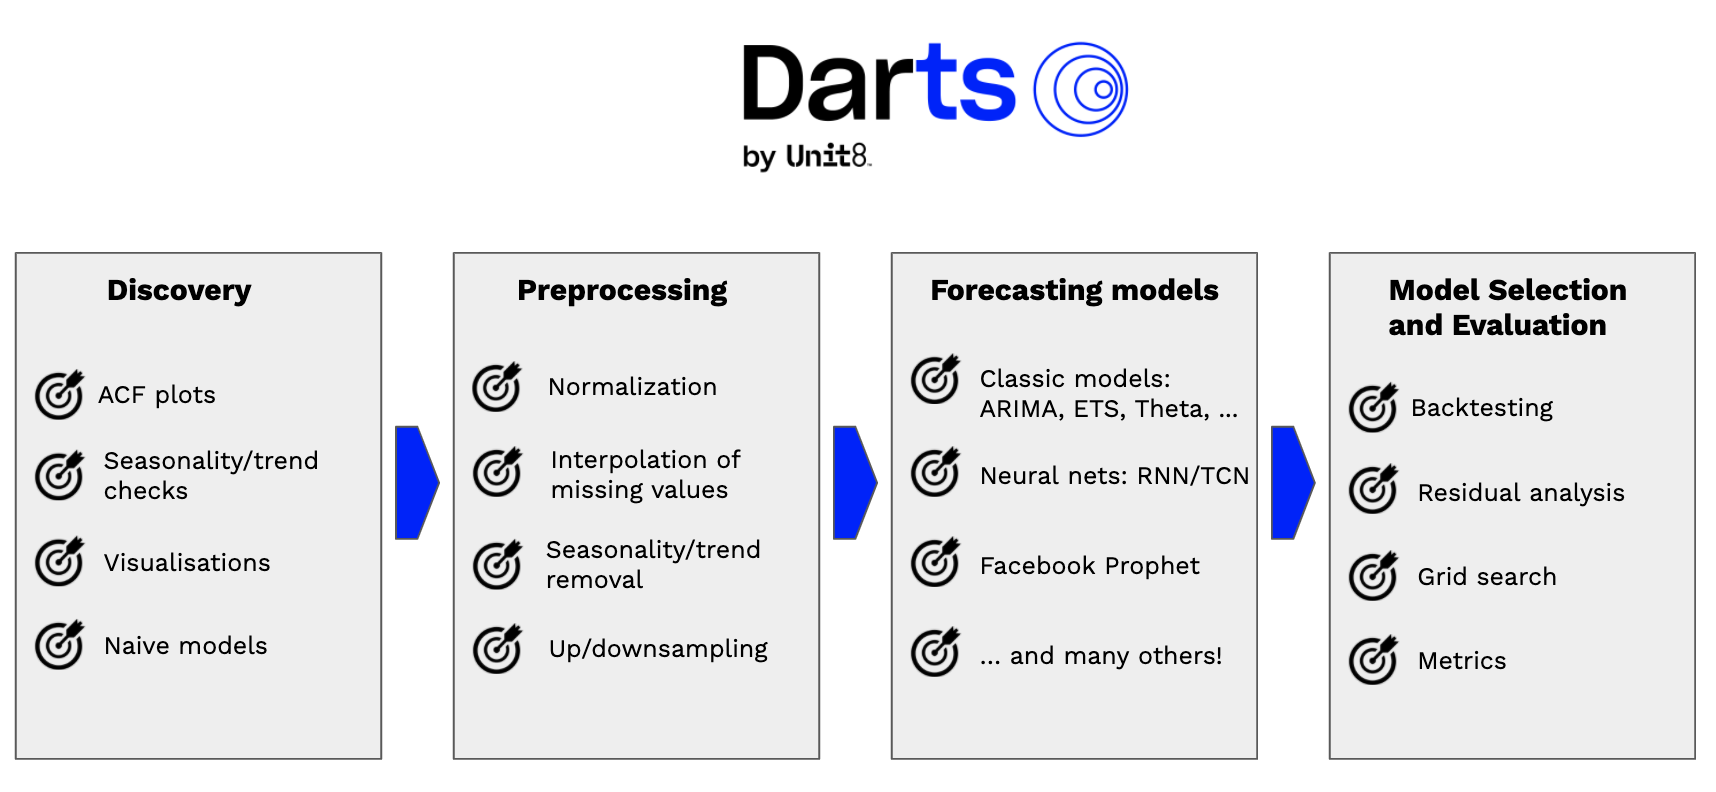 Darts is an attempt to smooth the end-to-end time series machine learning experience in Python